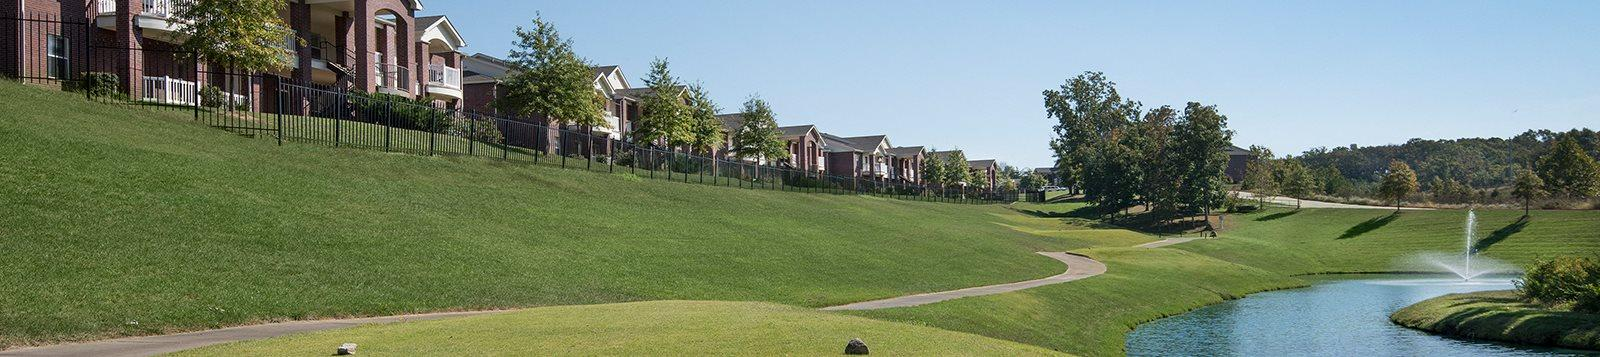 Beautiful Golf Course Views Available at The Links at Columbia, Columbia, Missouri